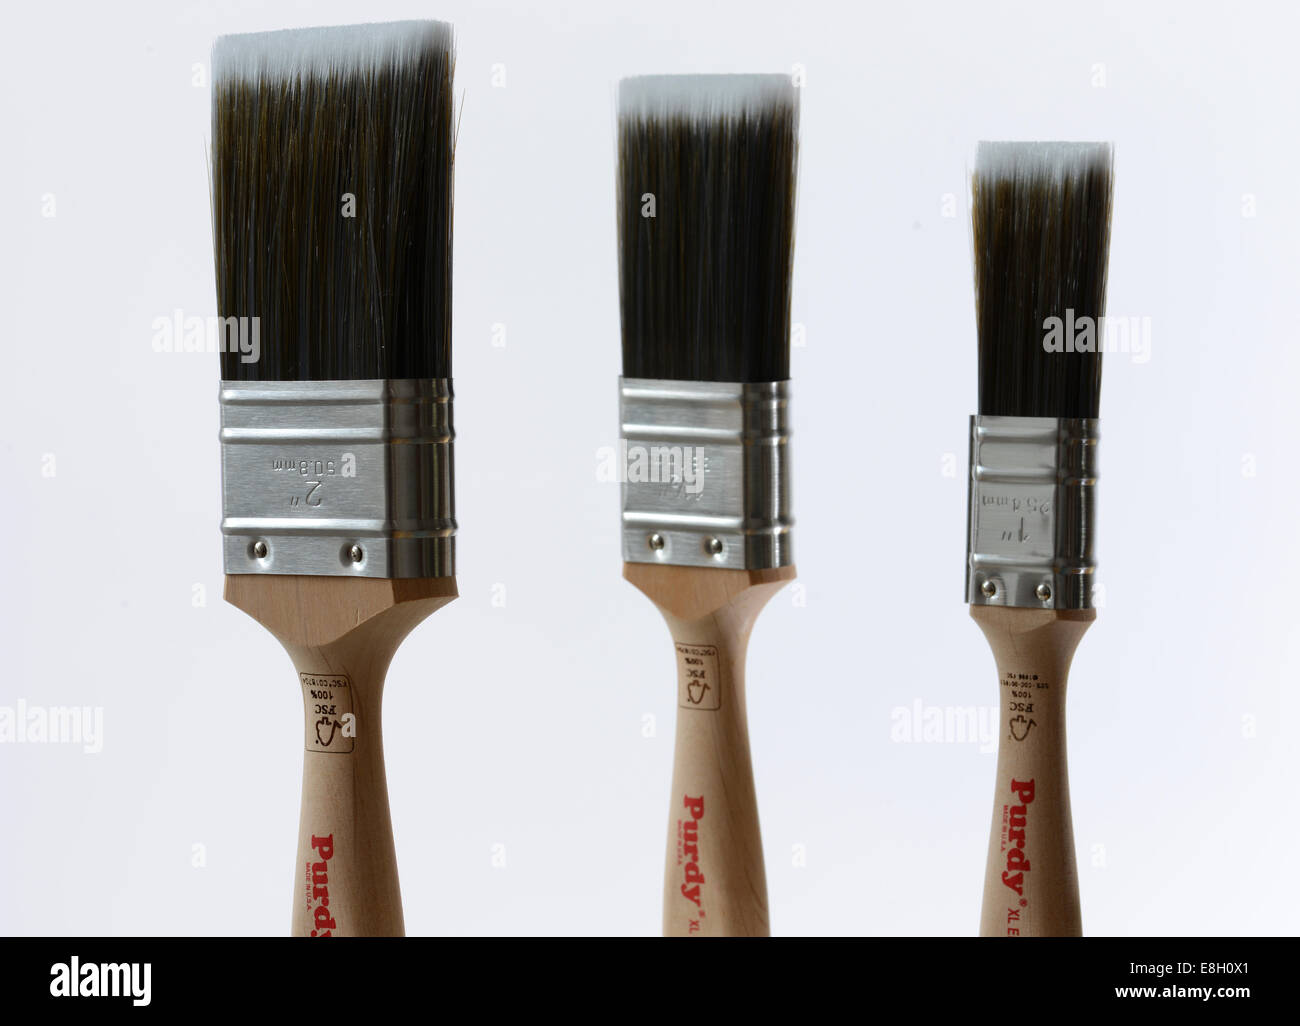 Three different size paint brushes - Stock Image